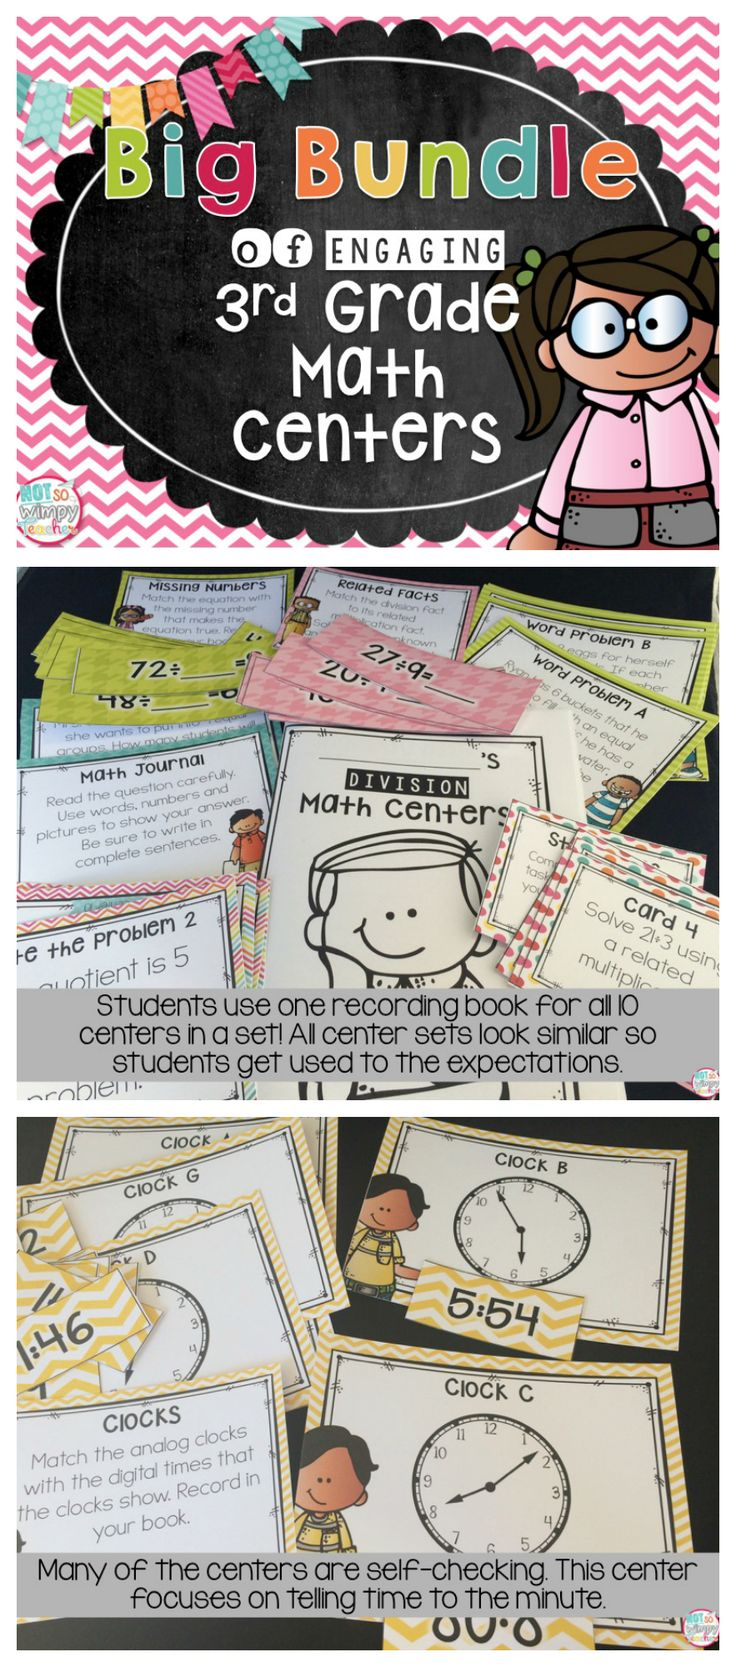 This bundle includes hands-on and engaging math centers for the entire year! Each center has the same format, so students will learn the expectations and procedures and then be able to complete centers for the entire year without many new directions.  The centers are engaging and include sorts, task cards, math writing, matching, etc. Each set of centers has a recording book that students use for all 10 centers in that unit.